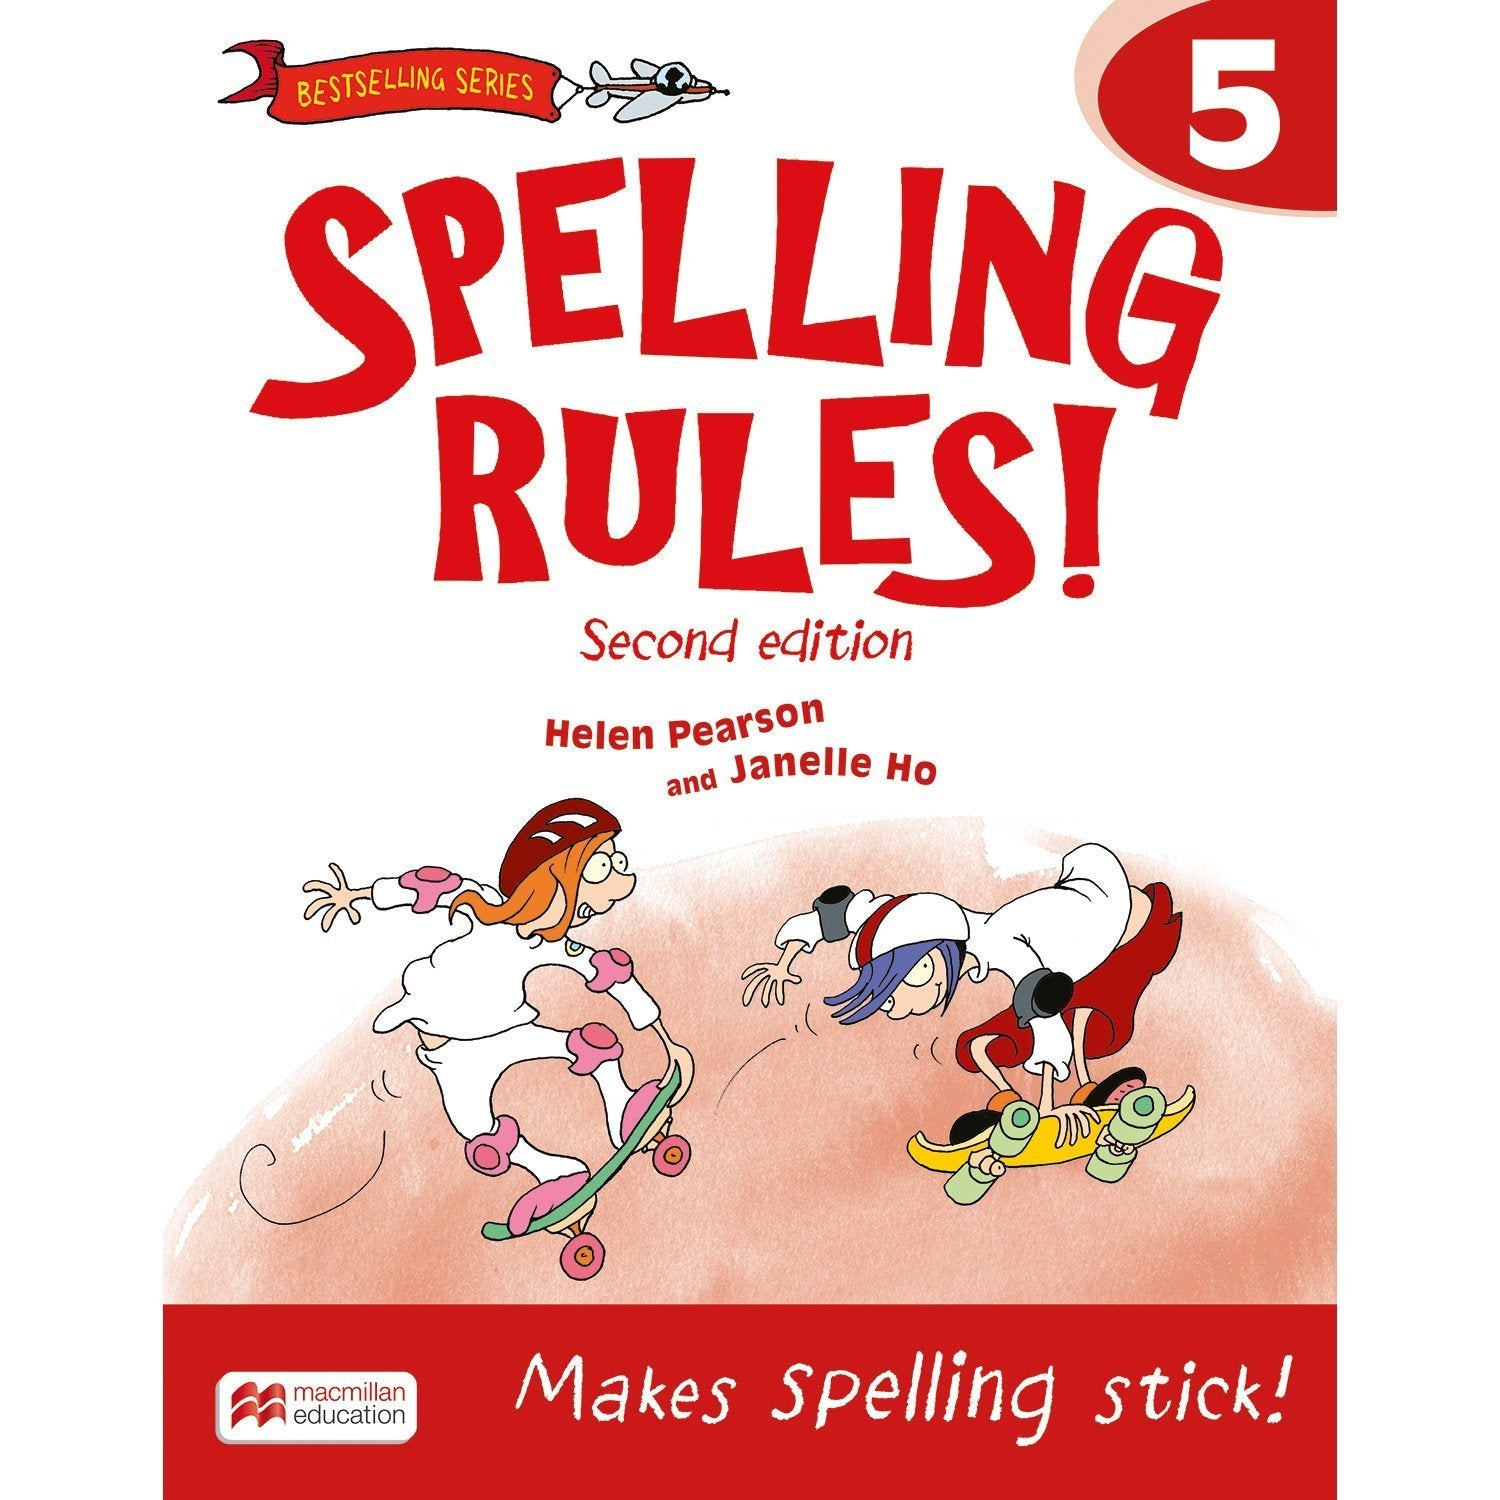 Spelling Rules! 2nd Edition Book 5